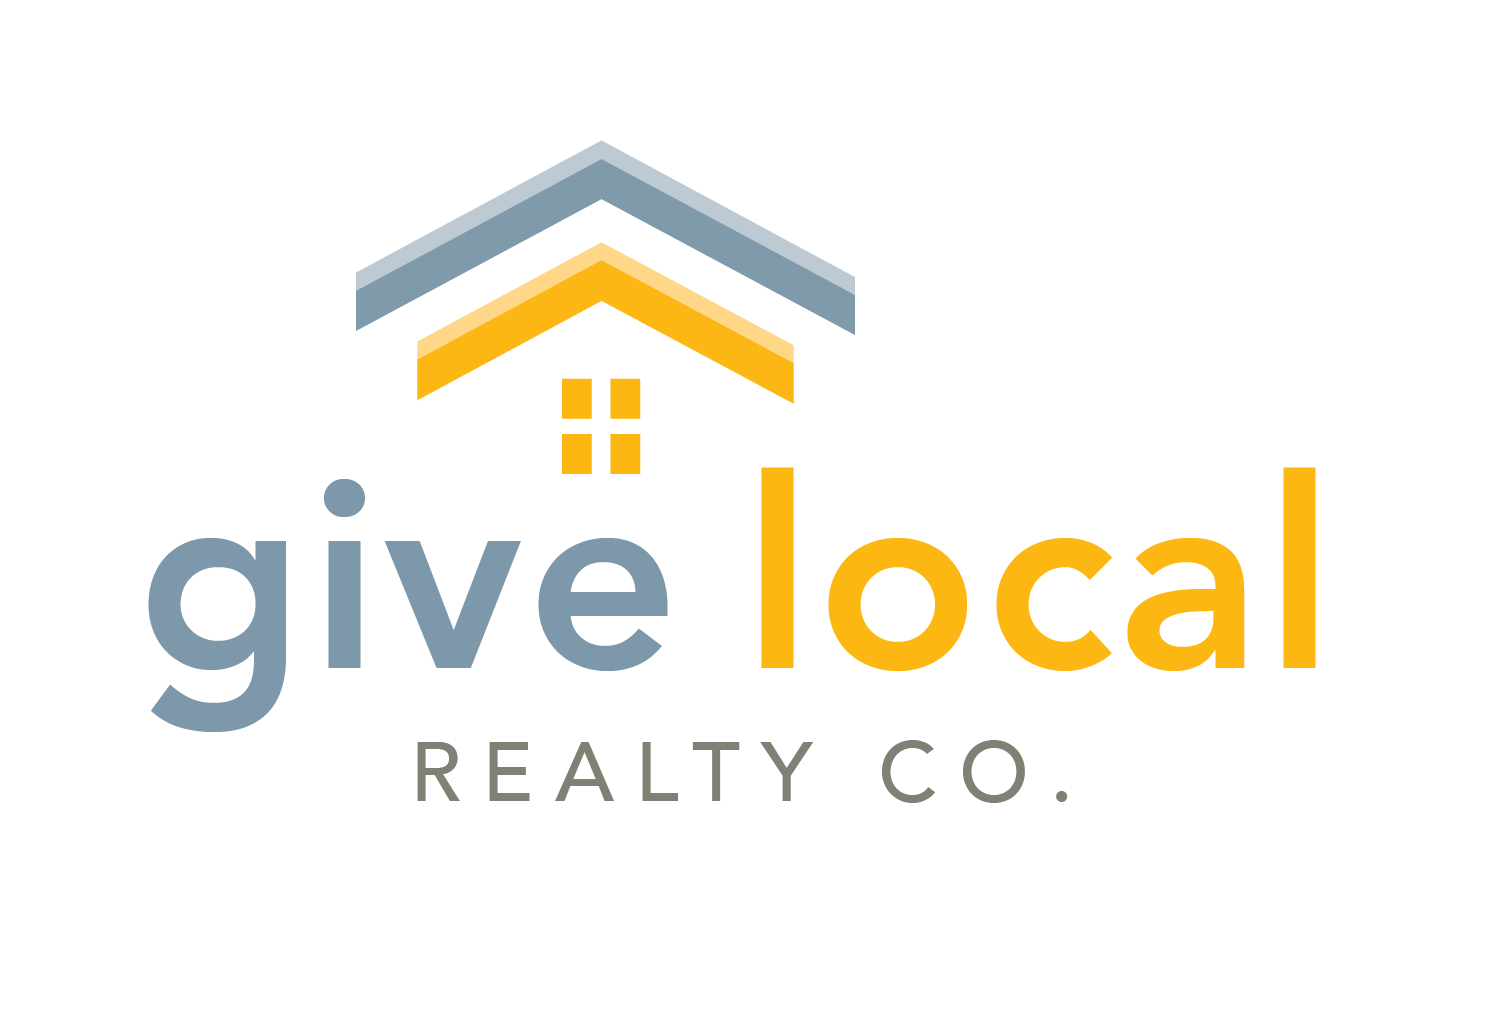 Copy of Give Local Realty